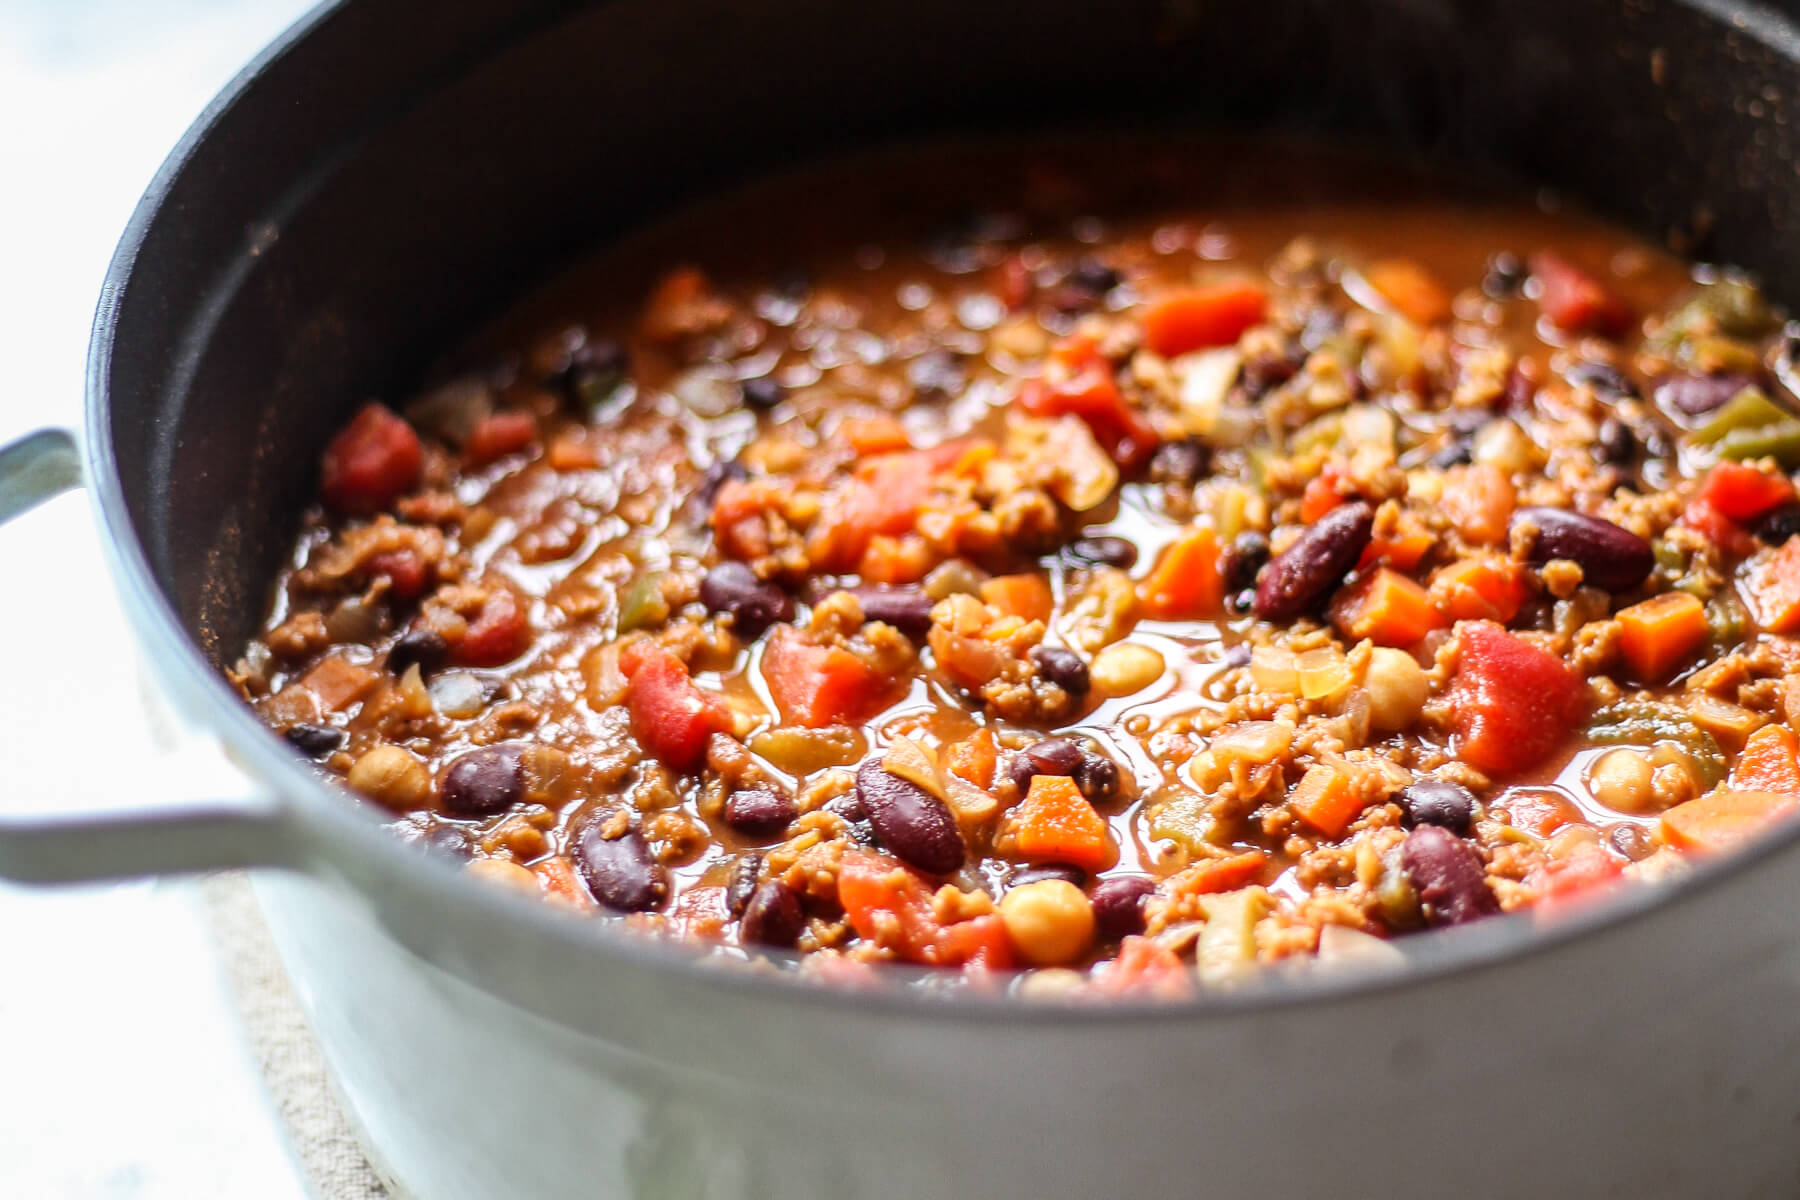 A close up photograph of vegan chili with chickpeas and beans that's finished simmering in a pot.